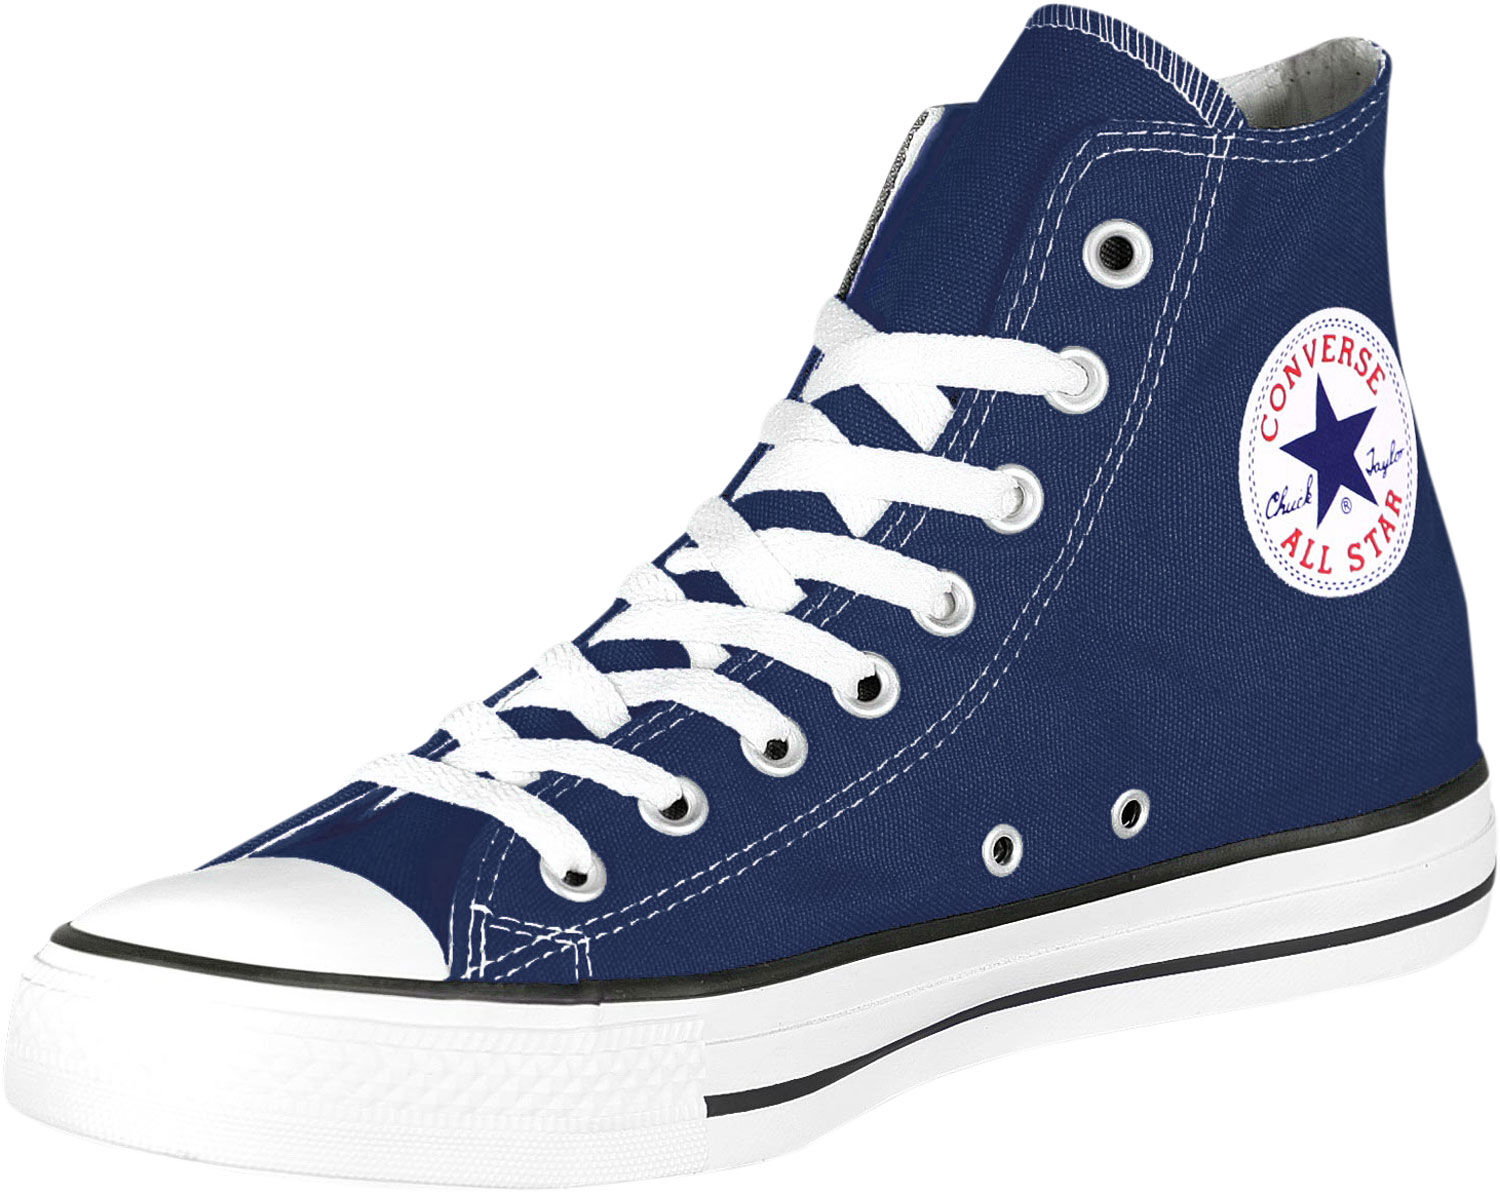 Converse All Star Hi - Sneakers High at